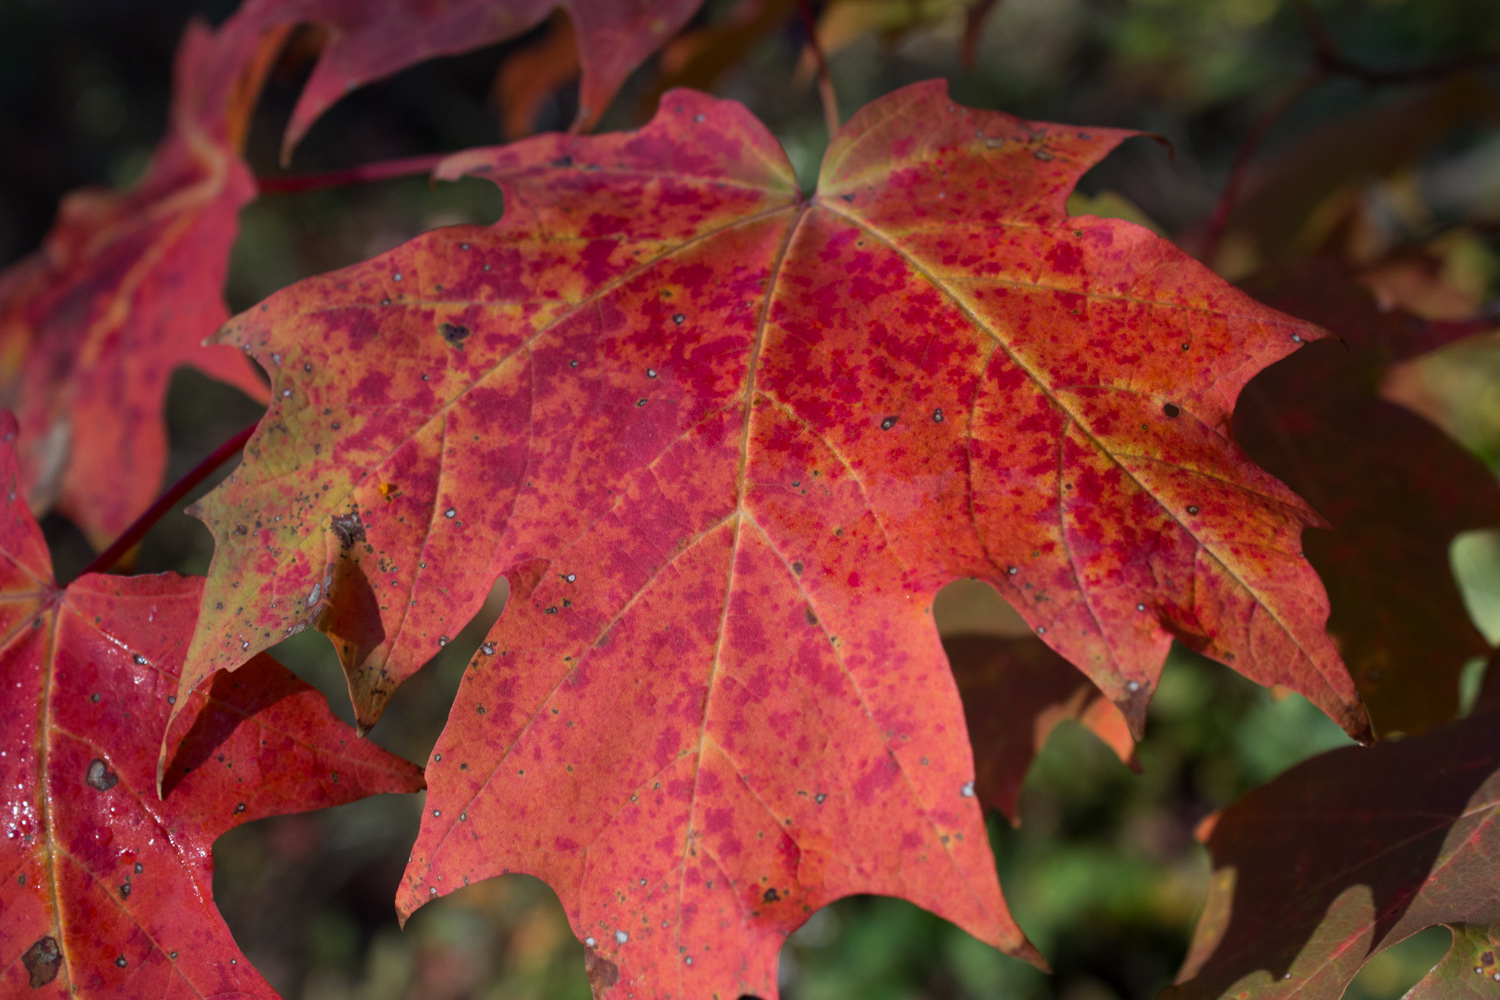 The red maple leaves are very dramatic